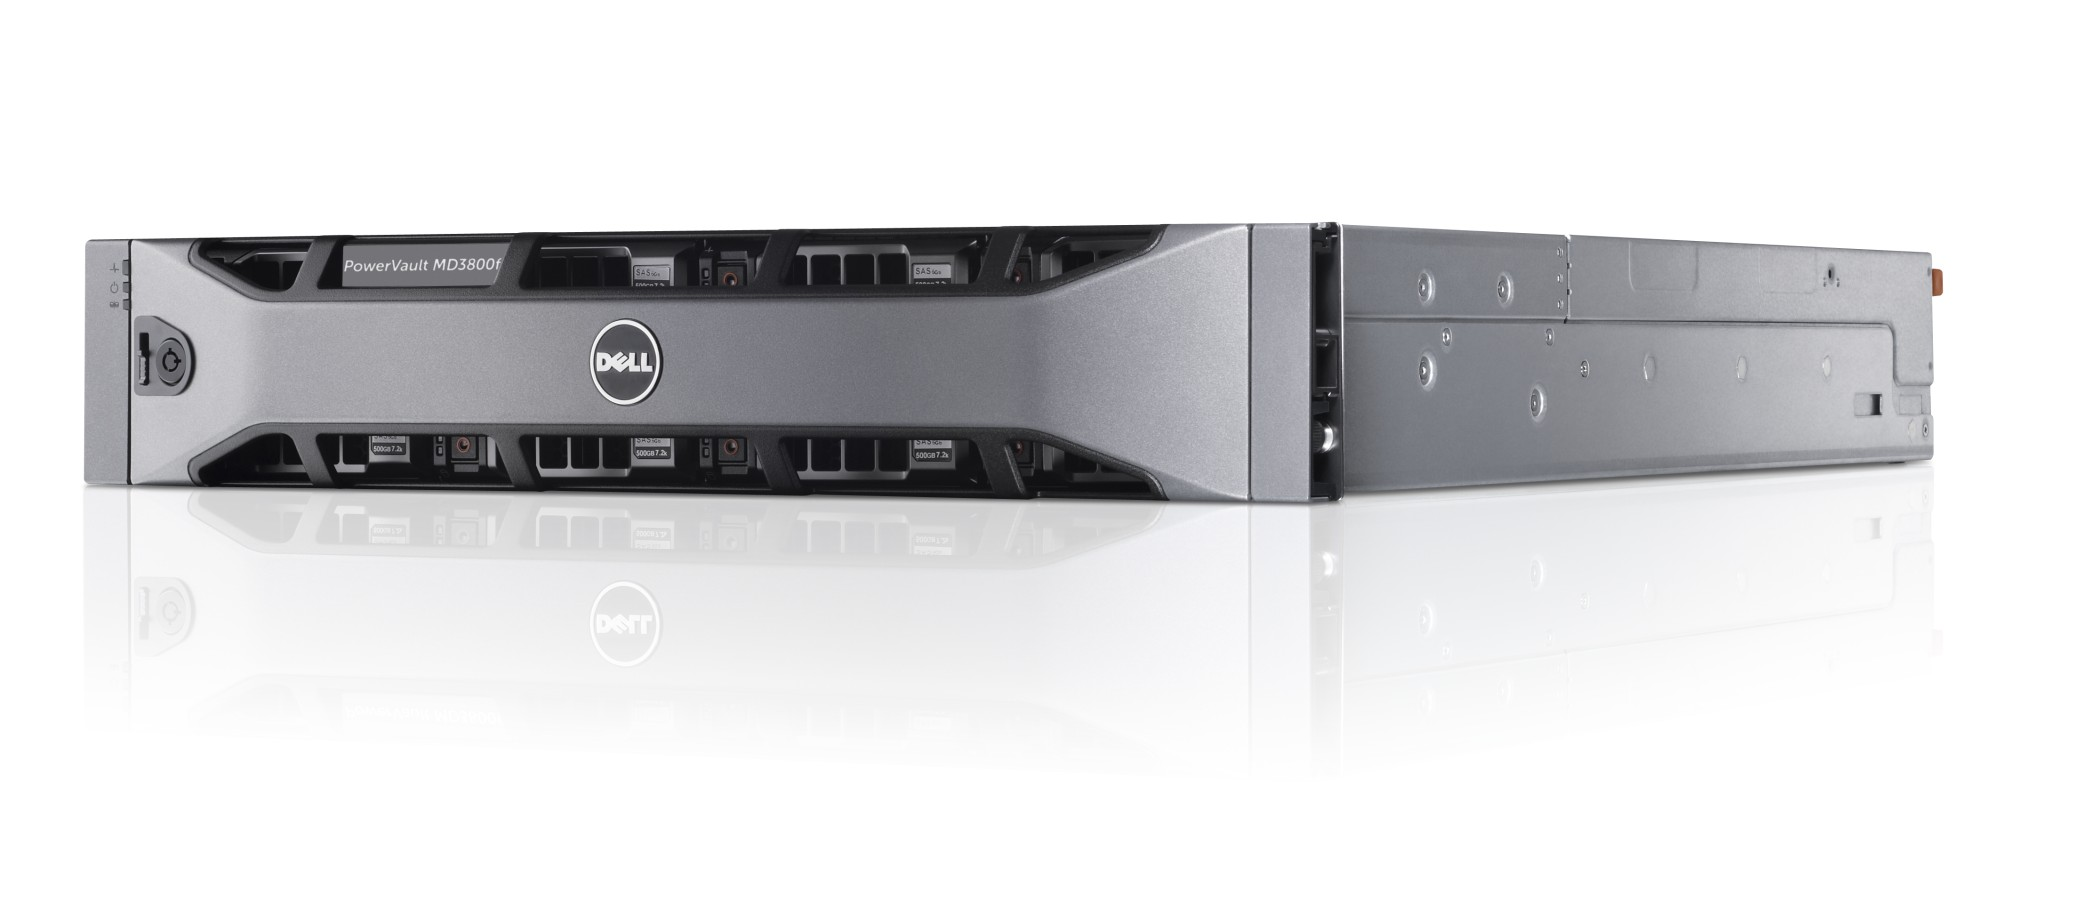 Dell PowerVault MD3800f/MD3820f